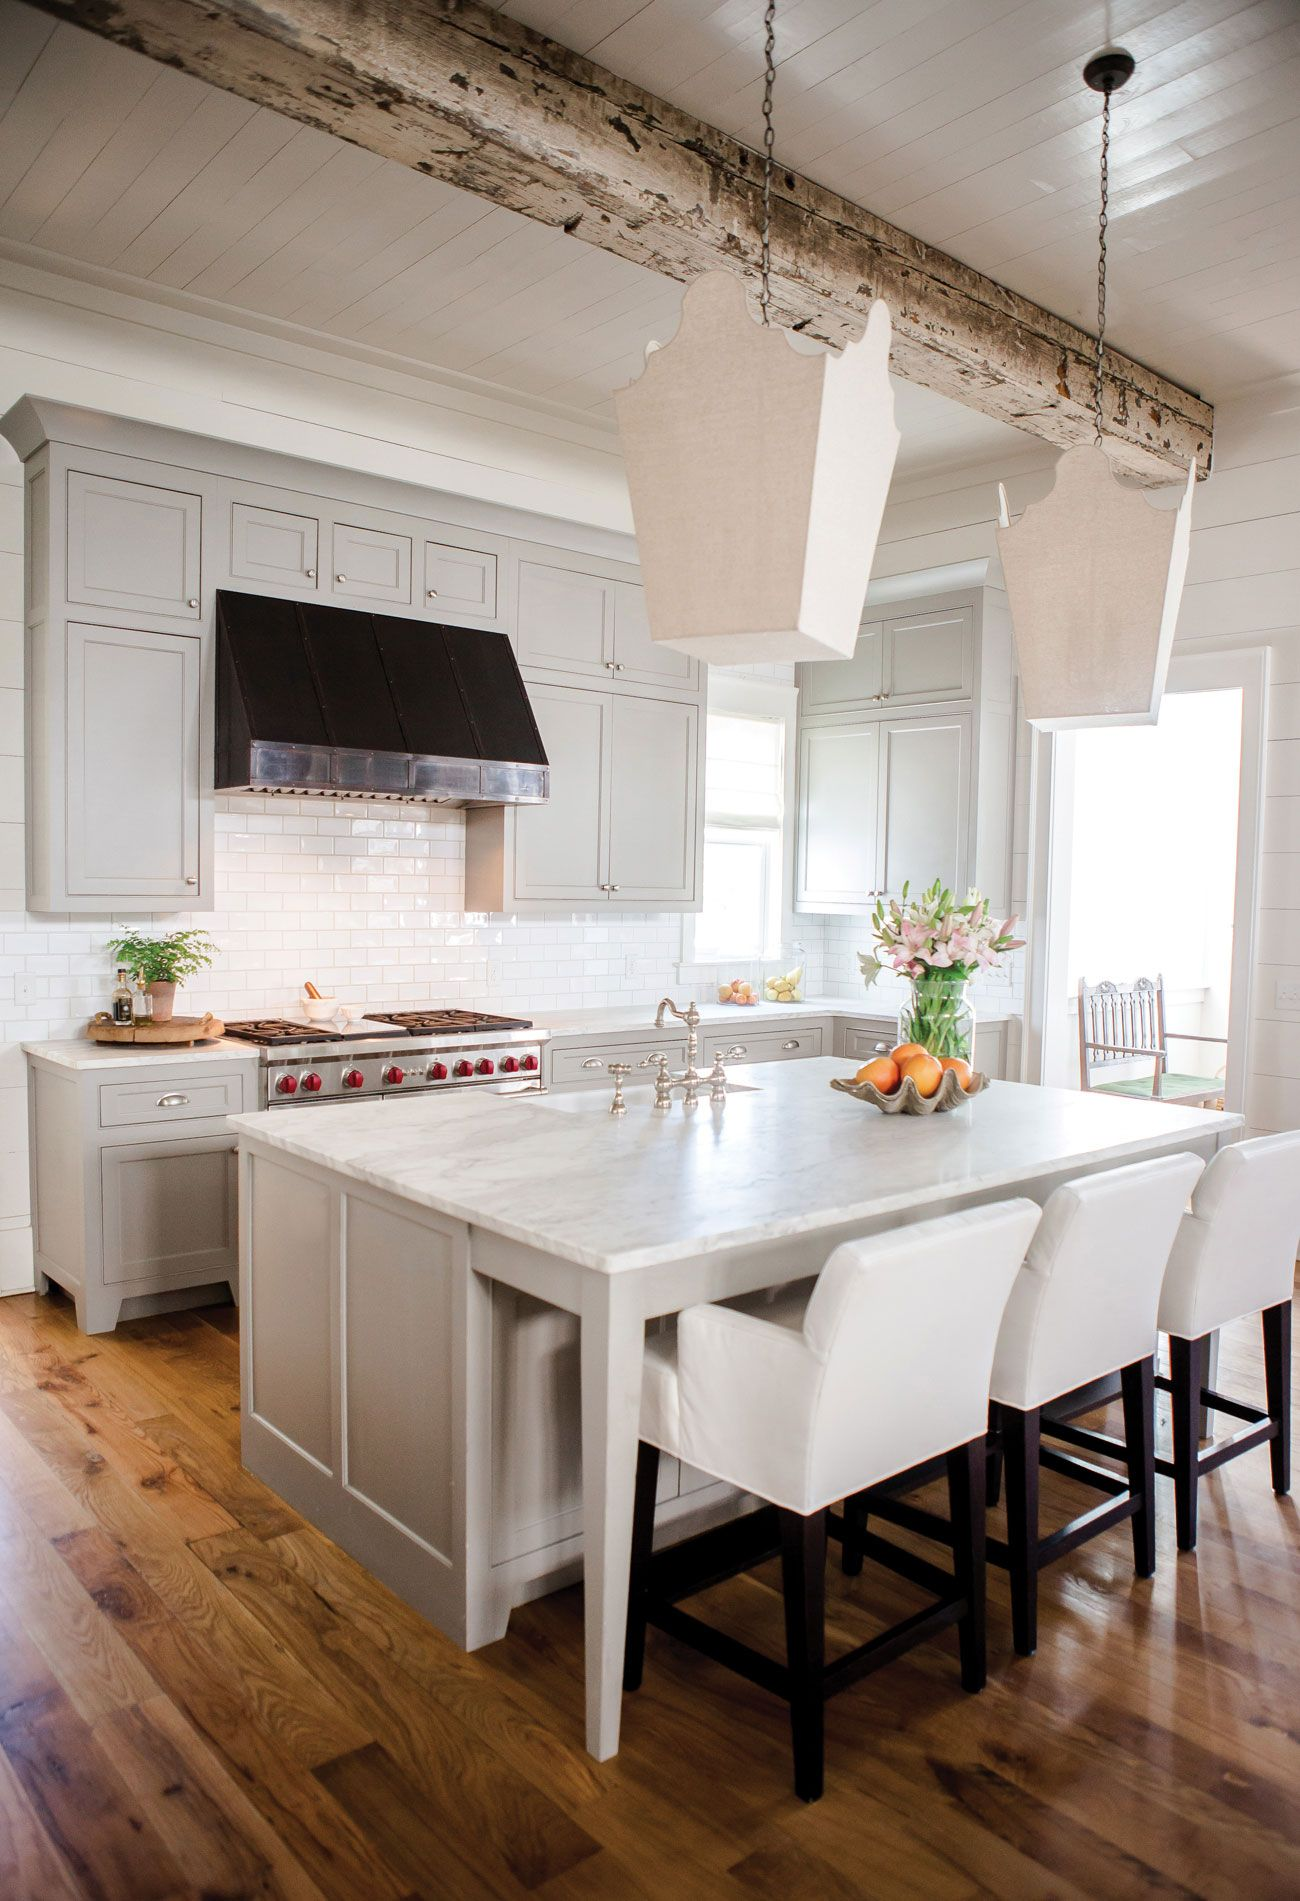 Behind The Design With Ashley Gilbreath Home Kitchens Beach House Kitchens Kitchen Design